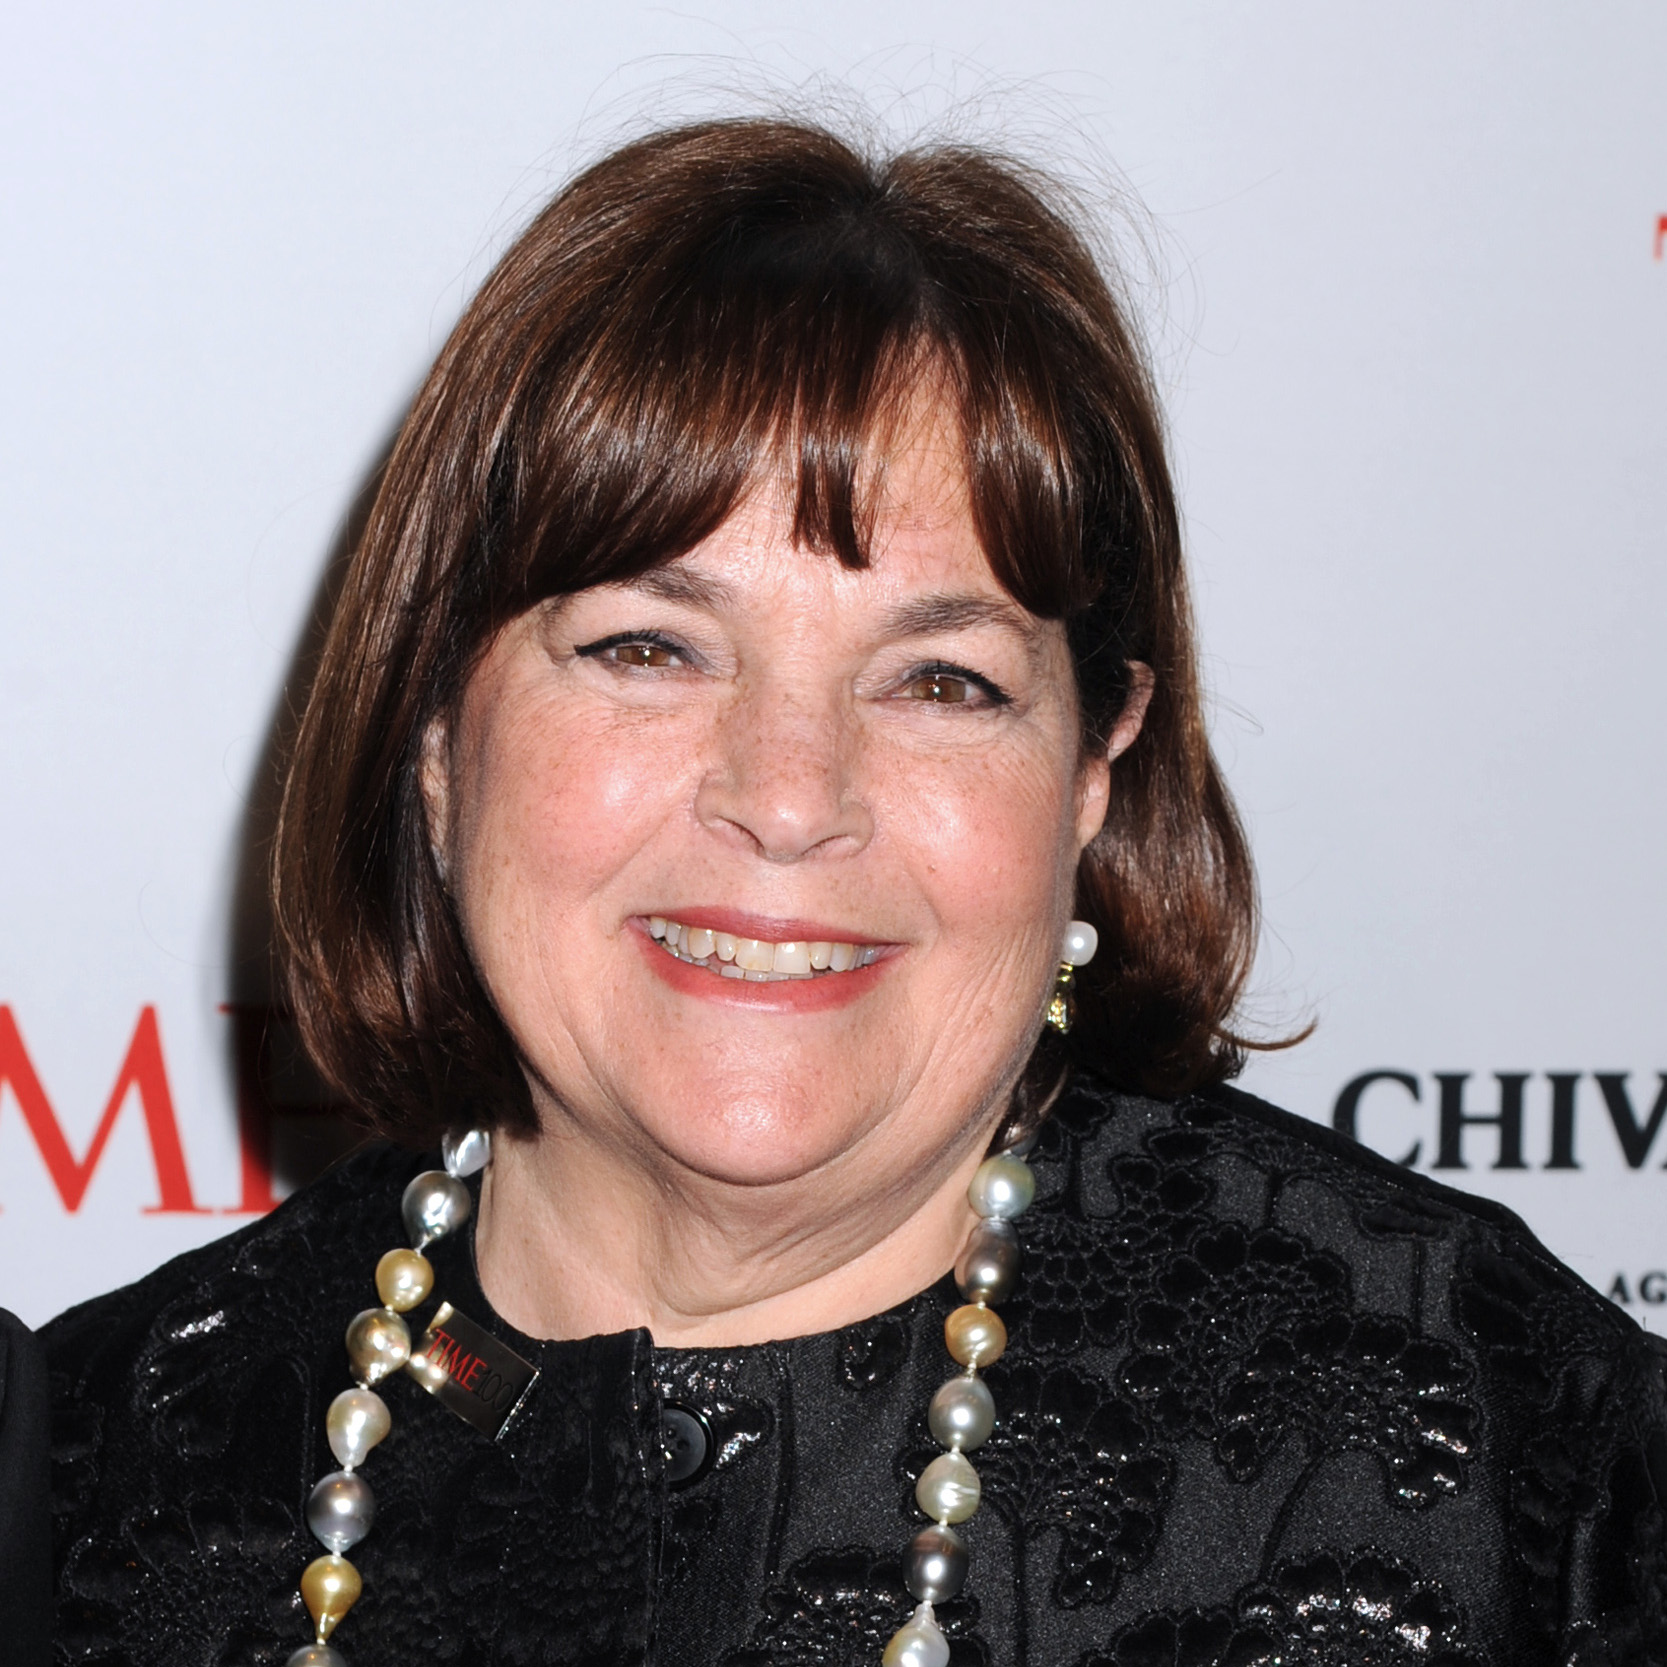 ina-garten-charity-brunch-fwx